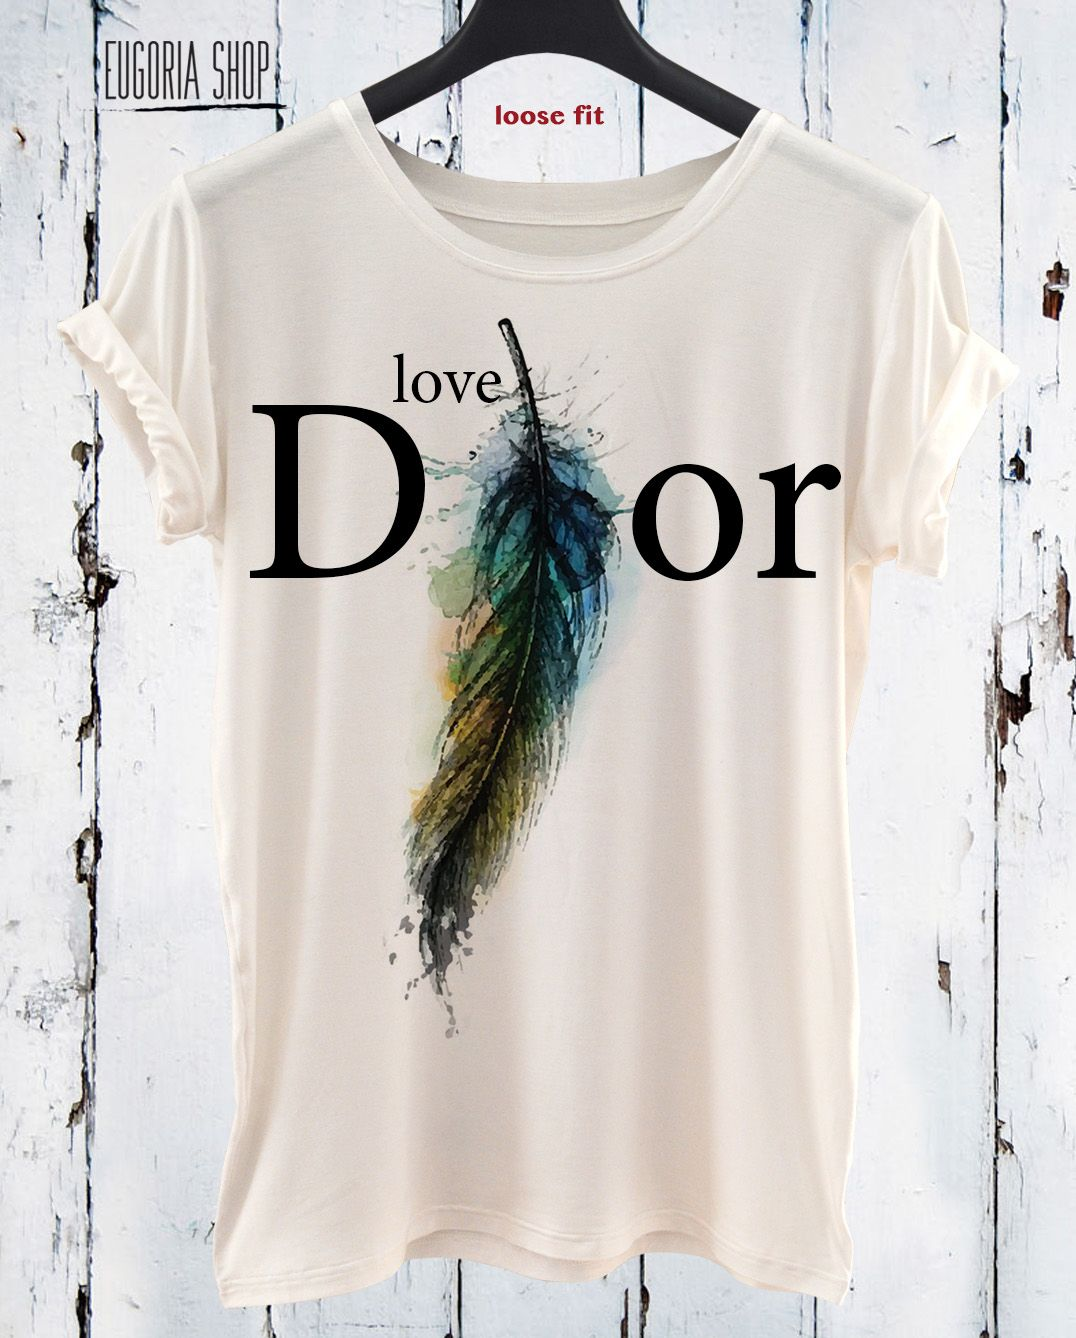 Design t shirt hand made - Handmade Love Feather Dior Woman Cool Valentino T Shirt Anishar T Shirt Eugoria T Shirt Fashion T Shirt Eugoria Shop T Shirts Pinterest Dior